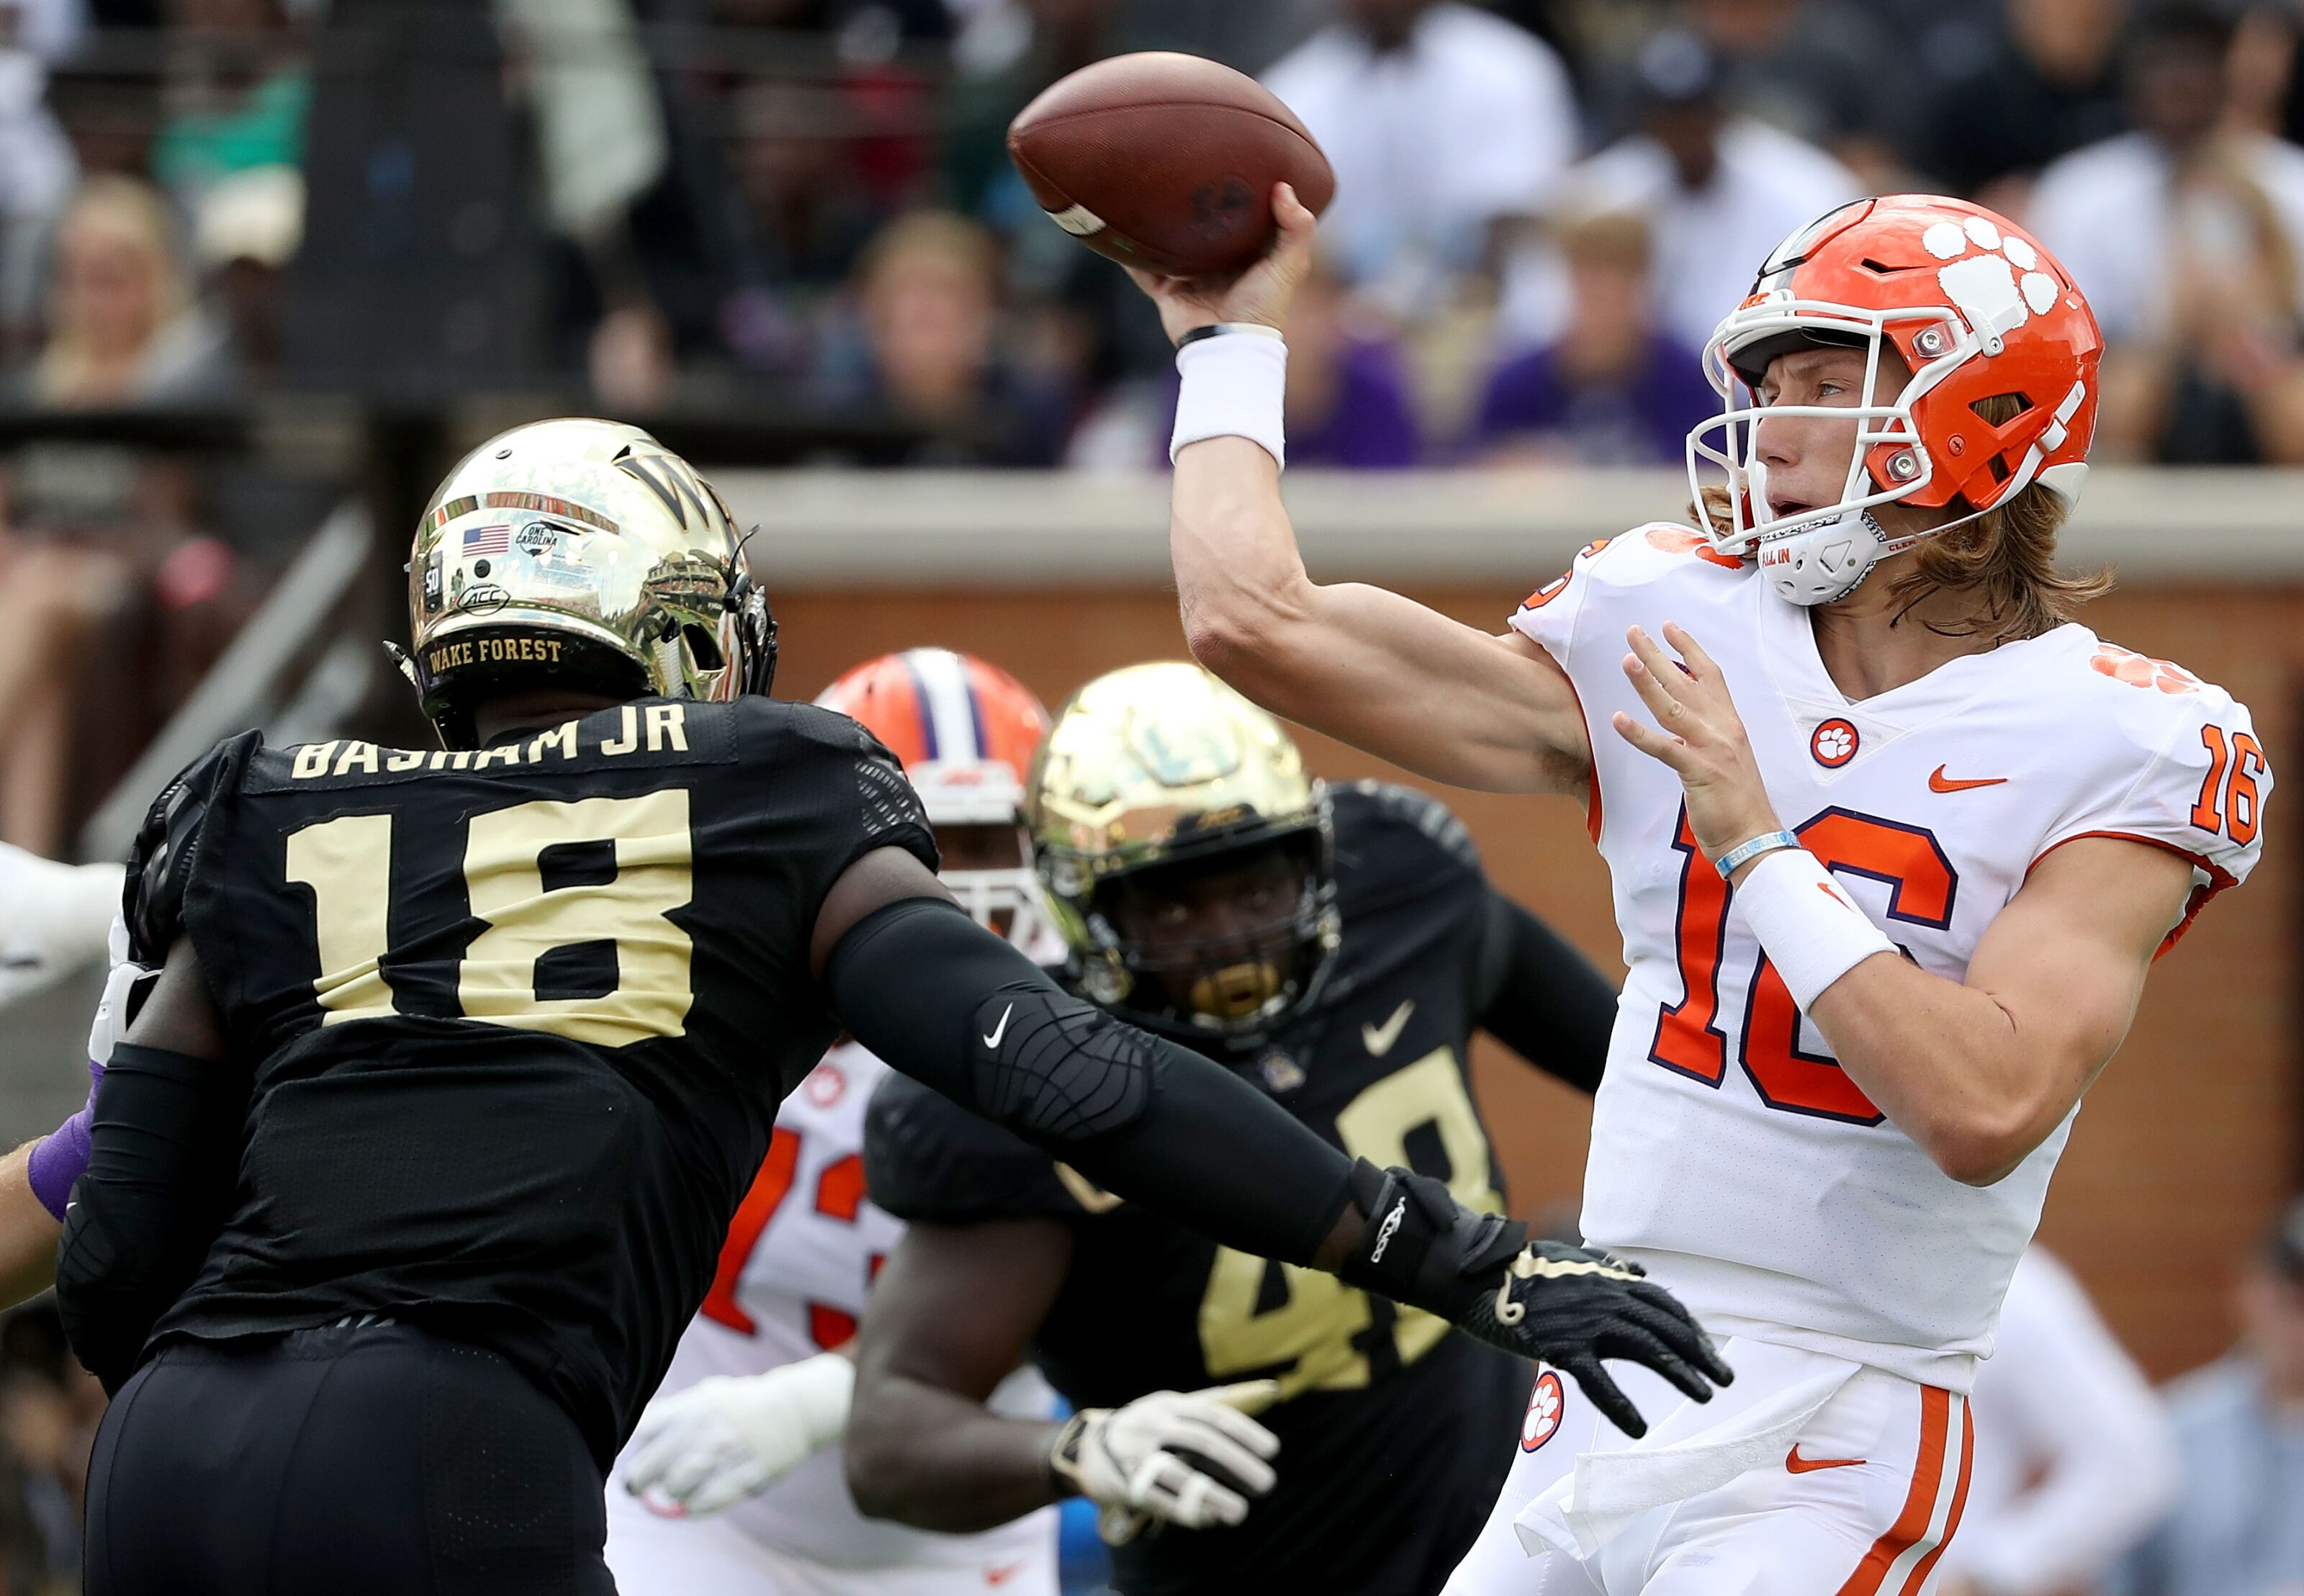 Clemson Football: Trevor Lawrence's midseason stats are unreal